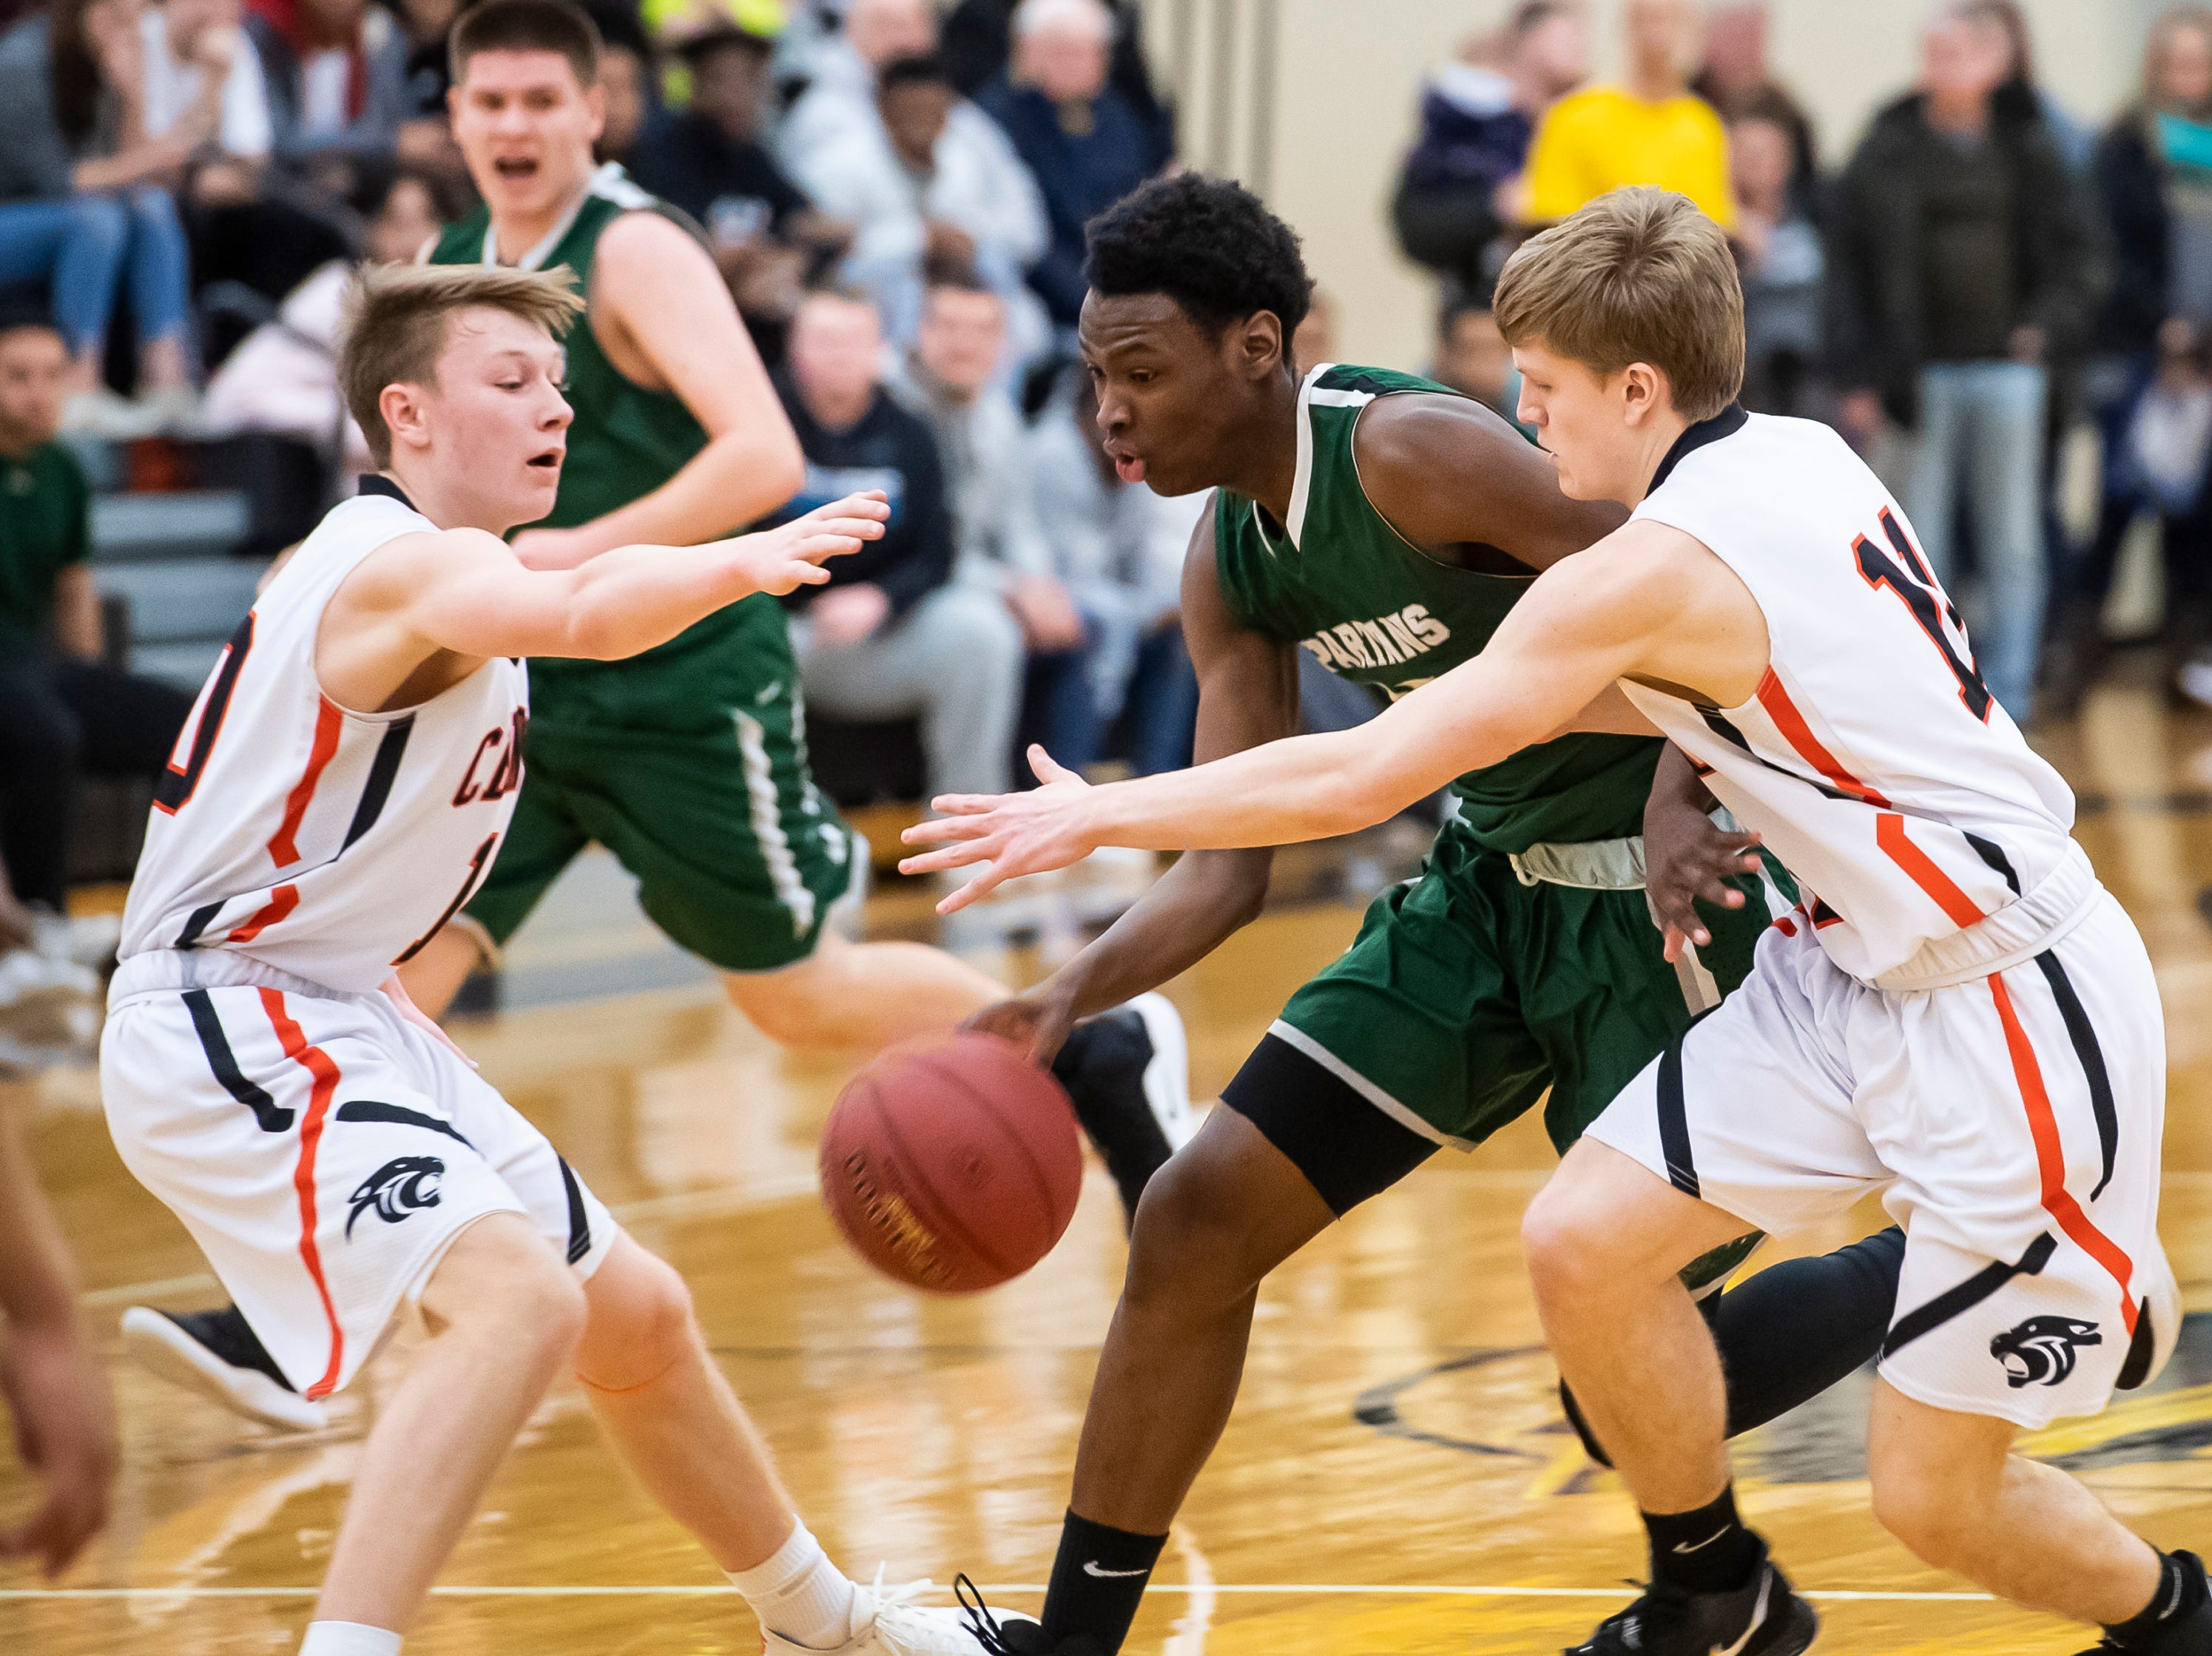 York County Tech's Jahkwan Batty dribbles between two Central York defenders in a YAIAA quarterfinal game at Red Lion High School Saturday, February 9, 2019. The Panthers won 74-43.